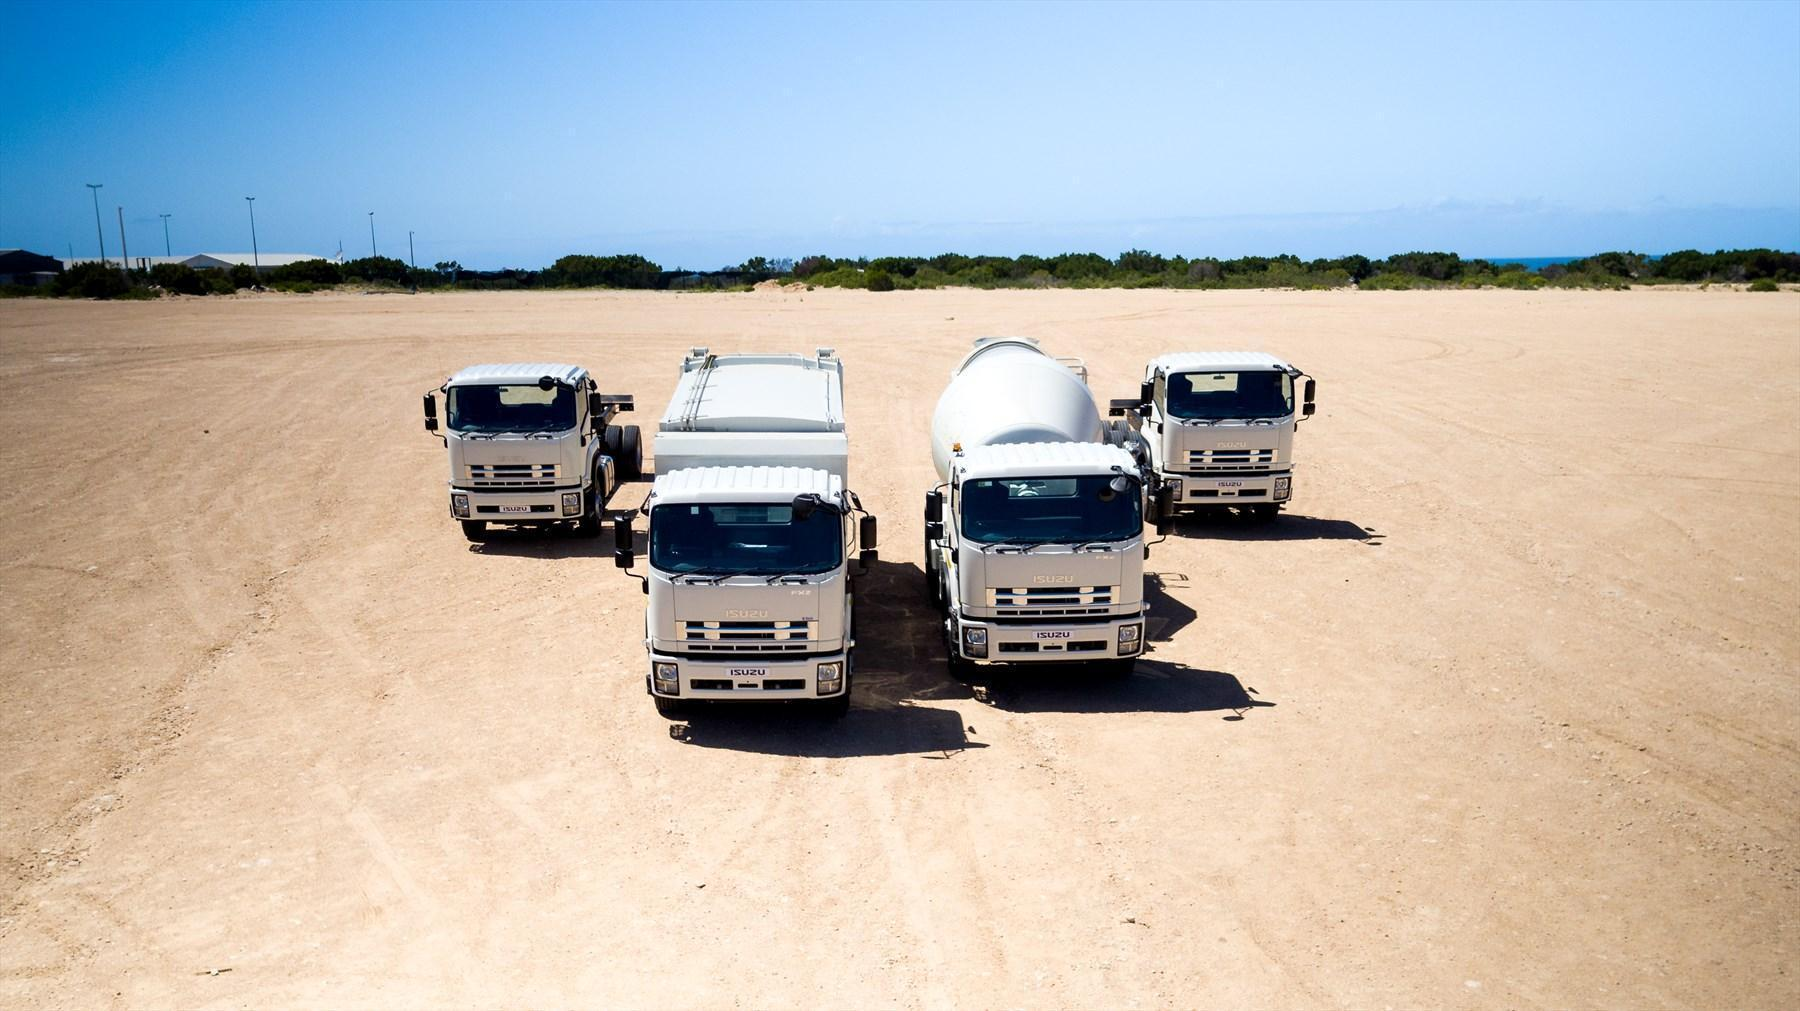 Isuzu sales remain resilient despite difficult trading conditions in 2020